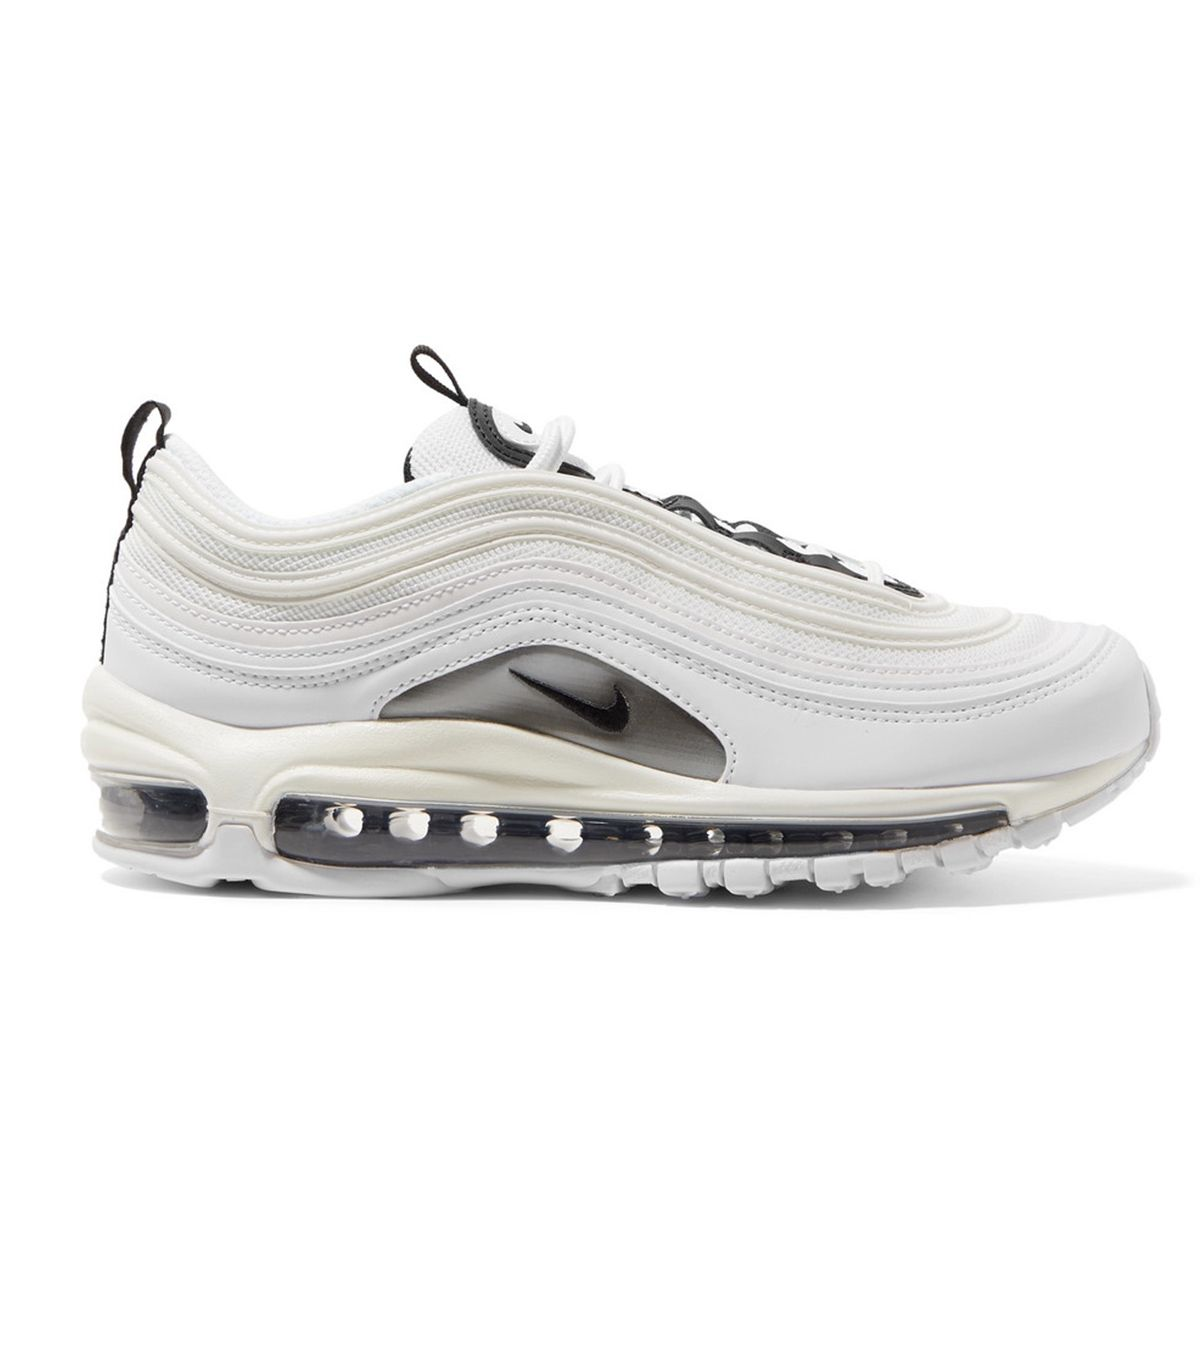 Women Over Age 40 Know These Are the Best Kinds of Sneakers, Wustoo